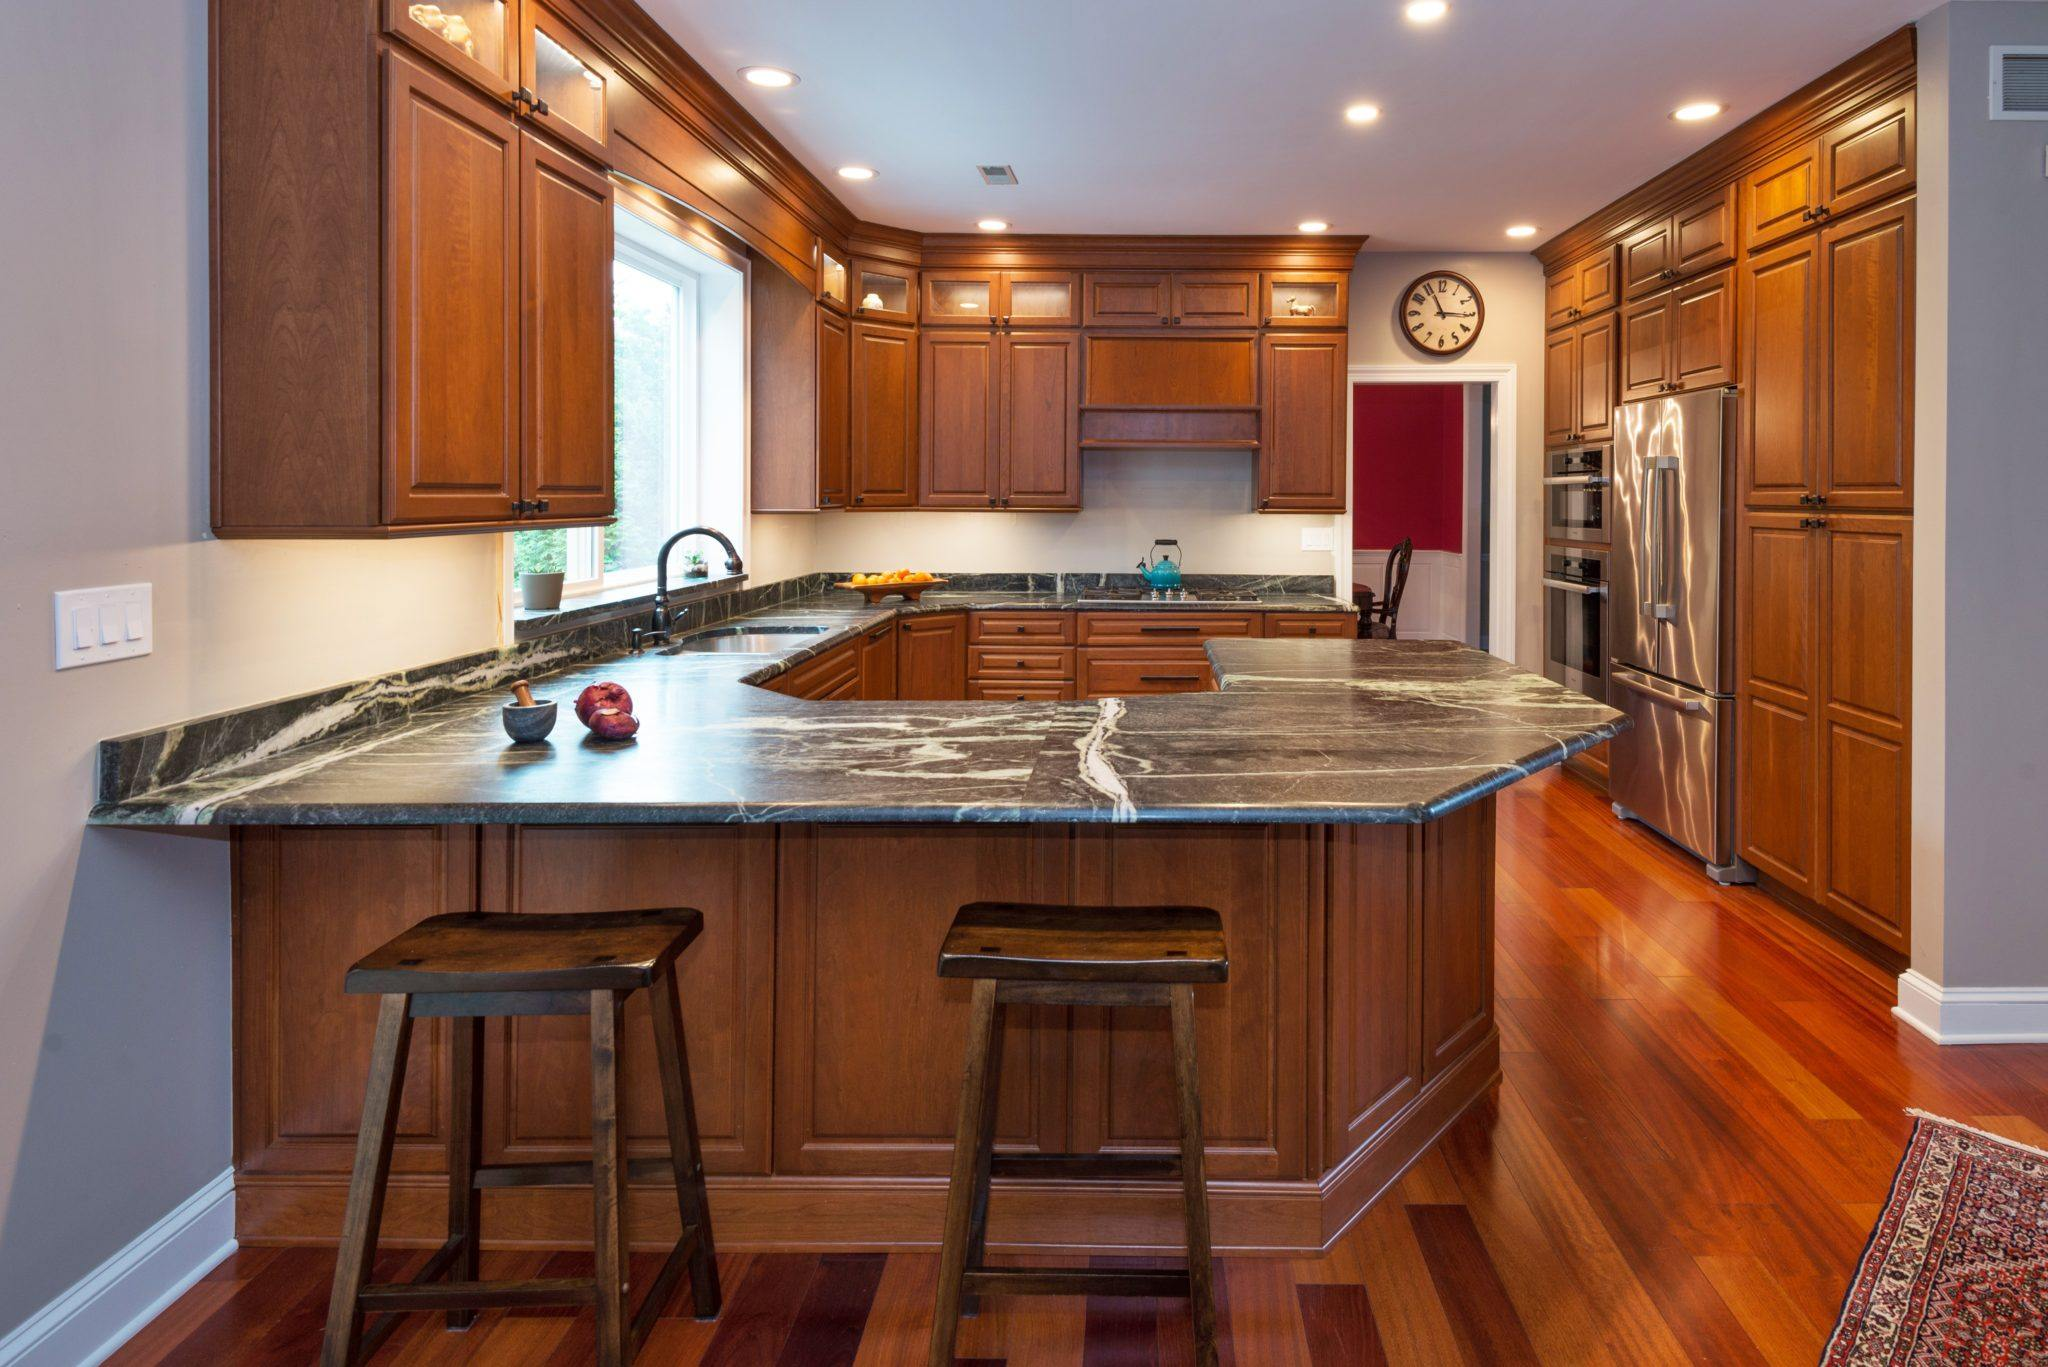 What Kitchen Cabinet Brand Is The Best For Me